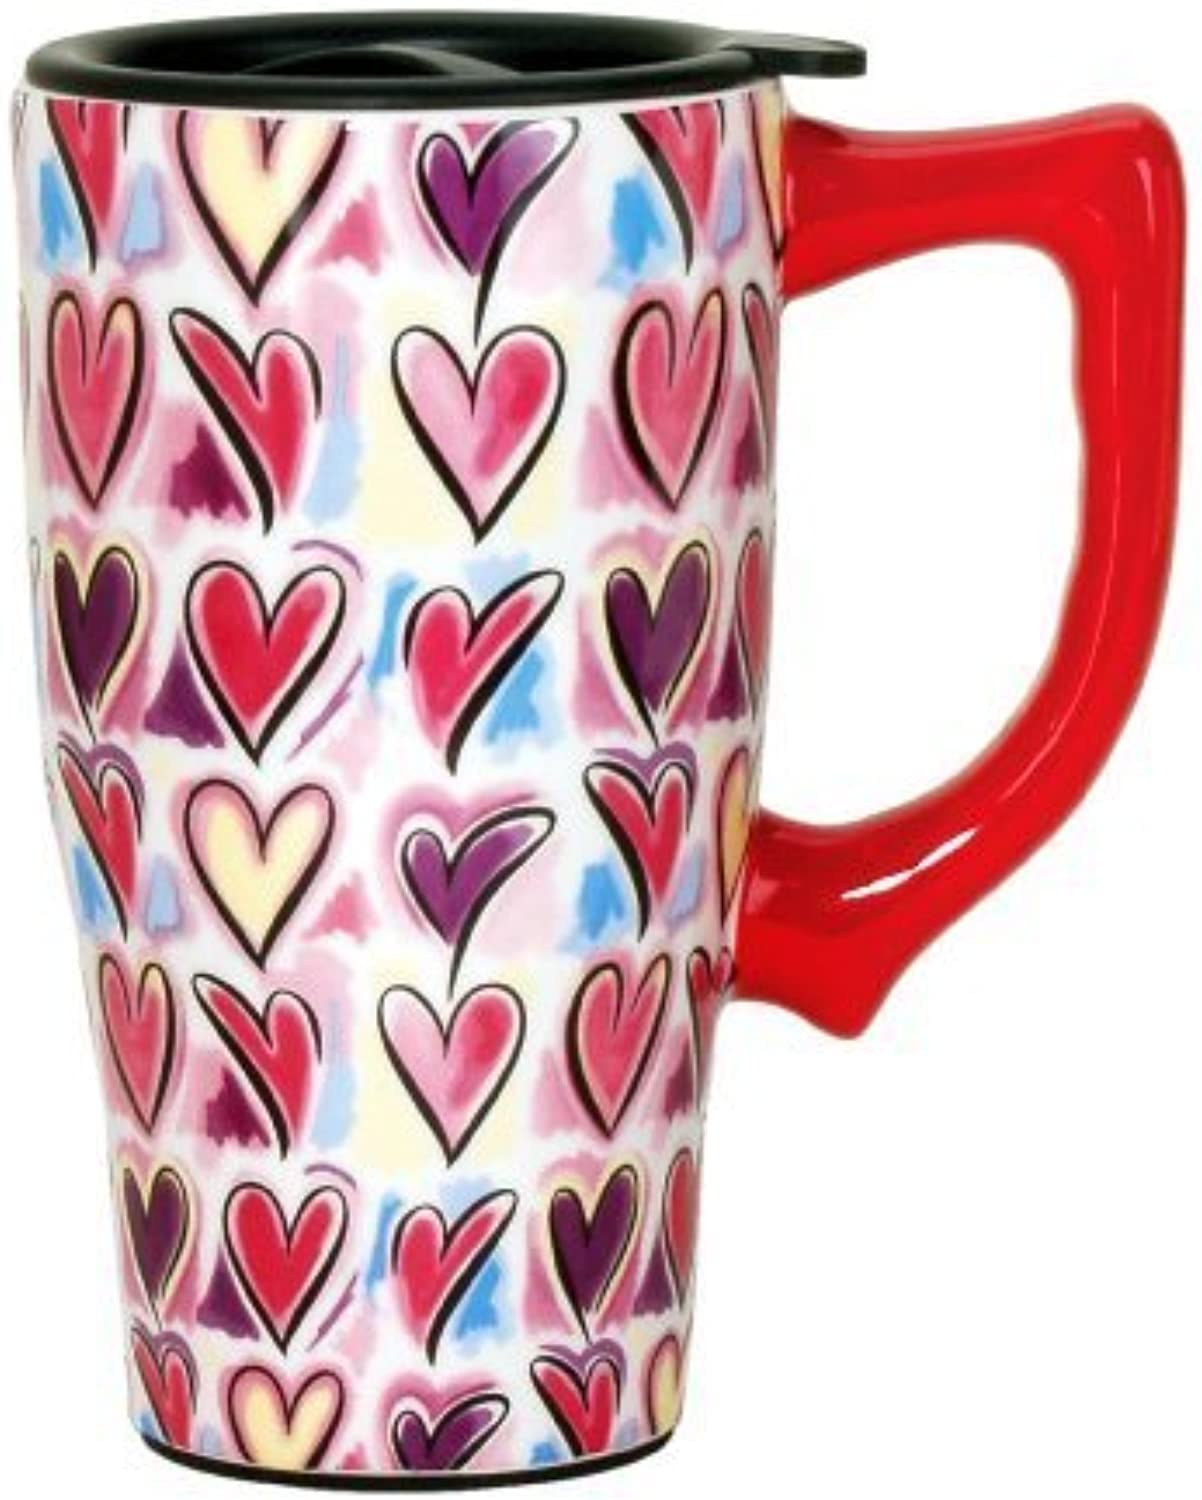 Spoontiques Hearts voyage Mug, Multi Couleuruge by Spoontiques